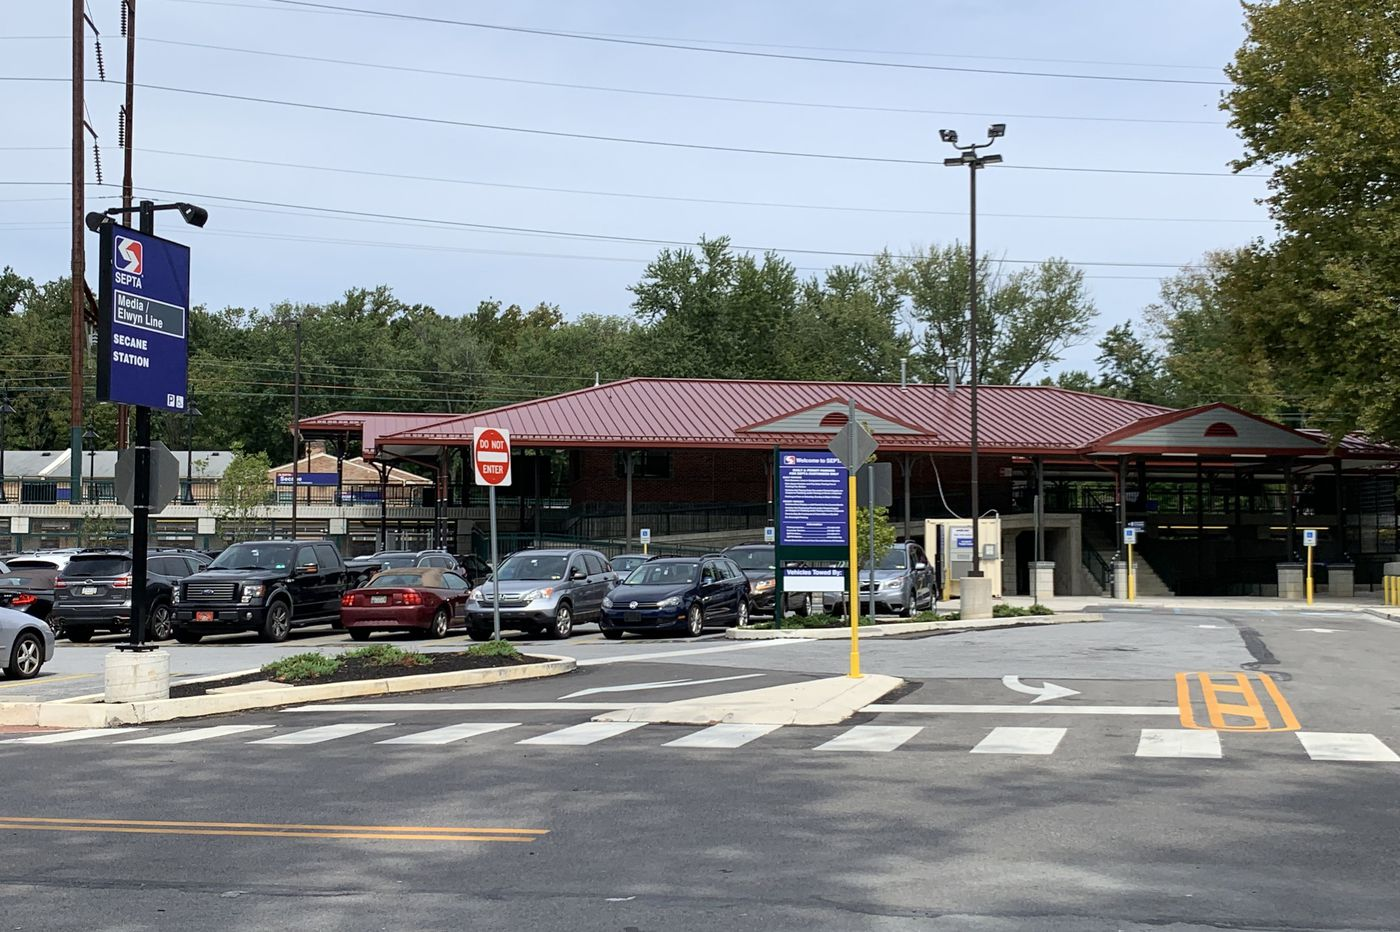 Upper Darby gets a new train station as SEPTA girds for transportation funding face-off